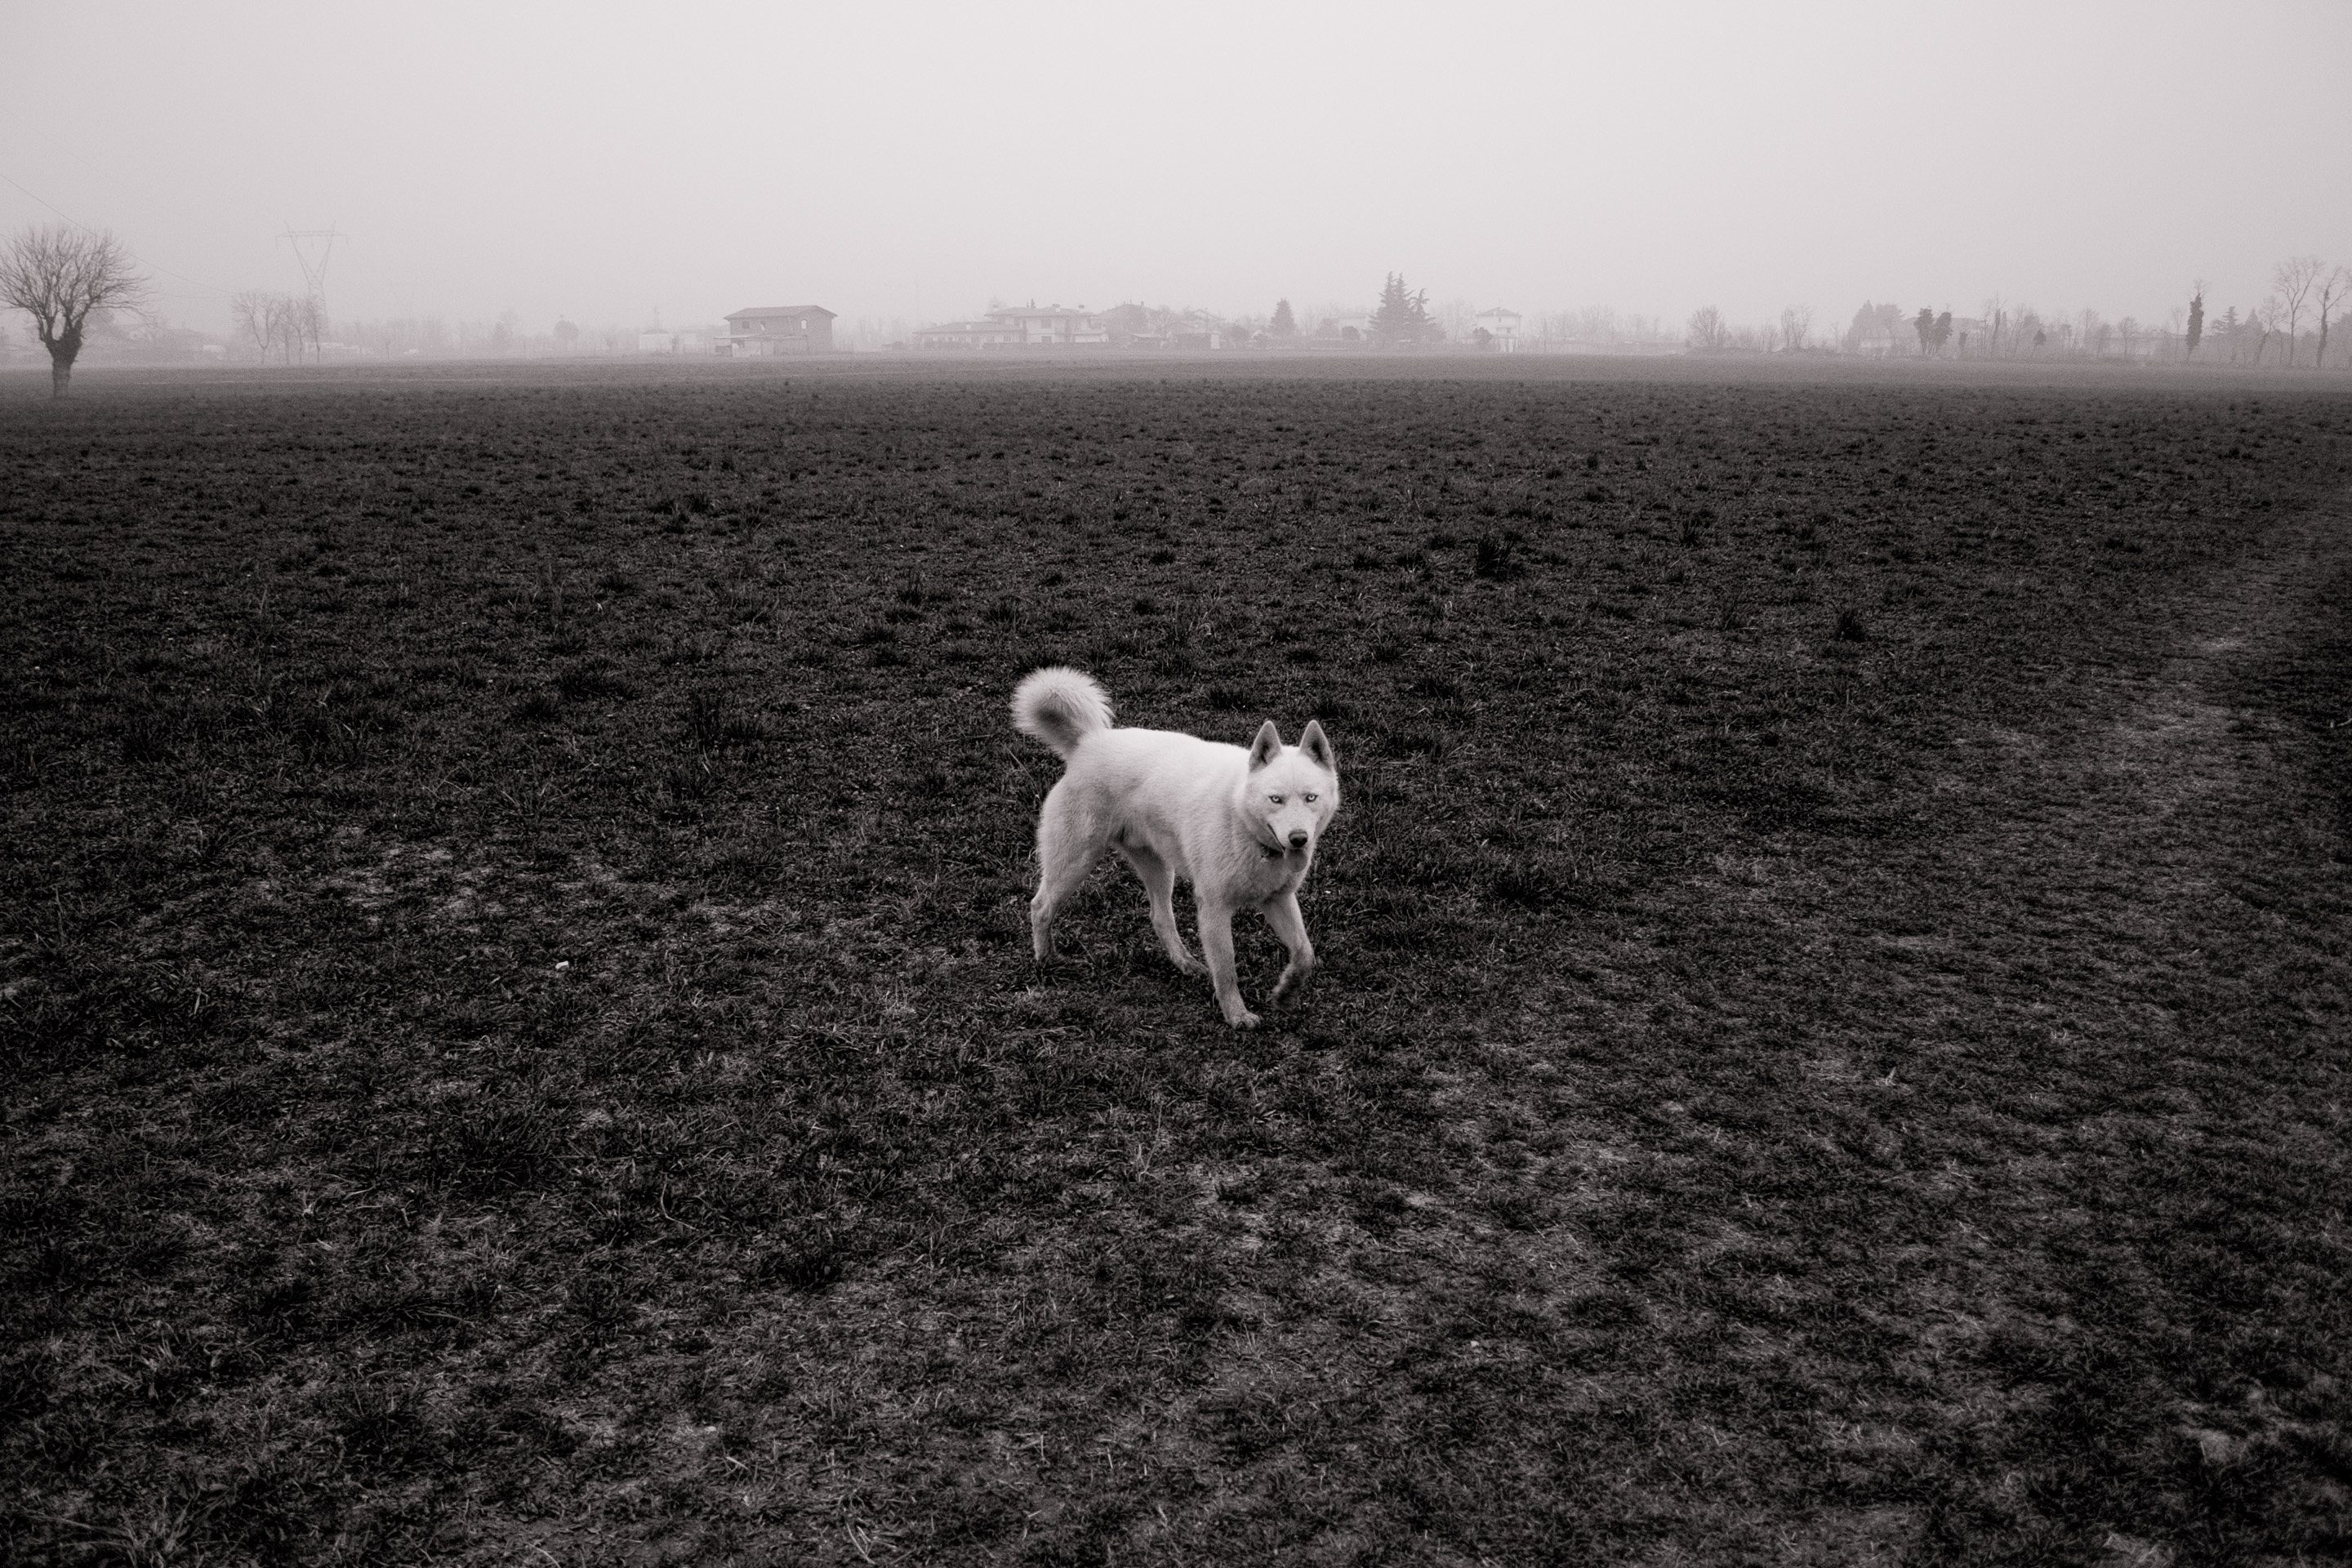 54 · White dog, I Click to view previous post